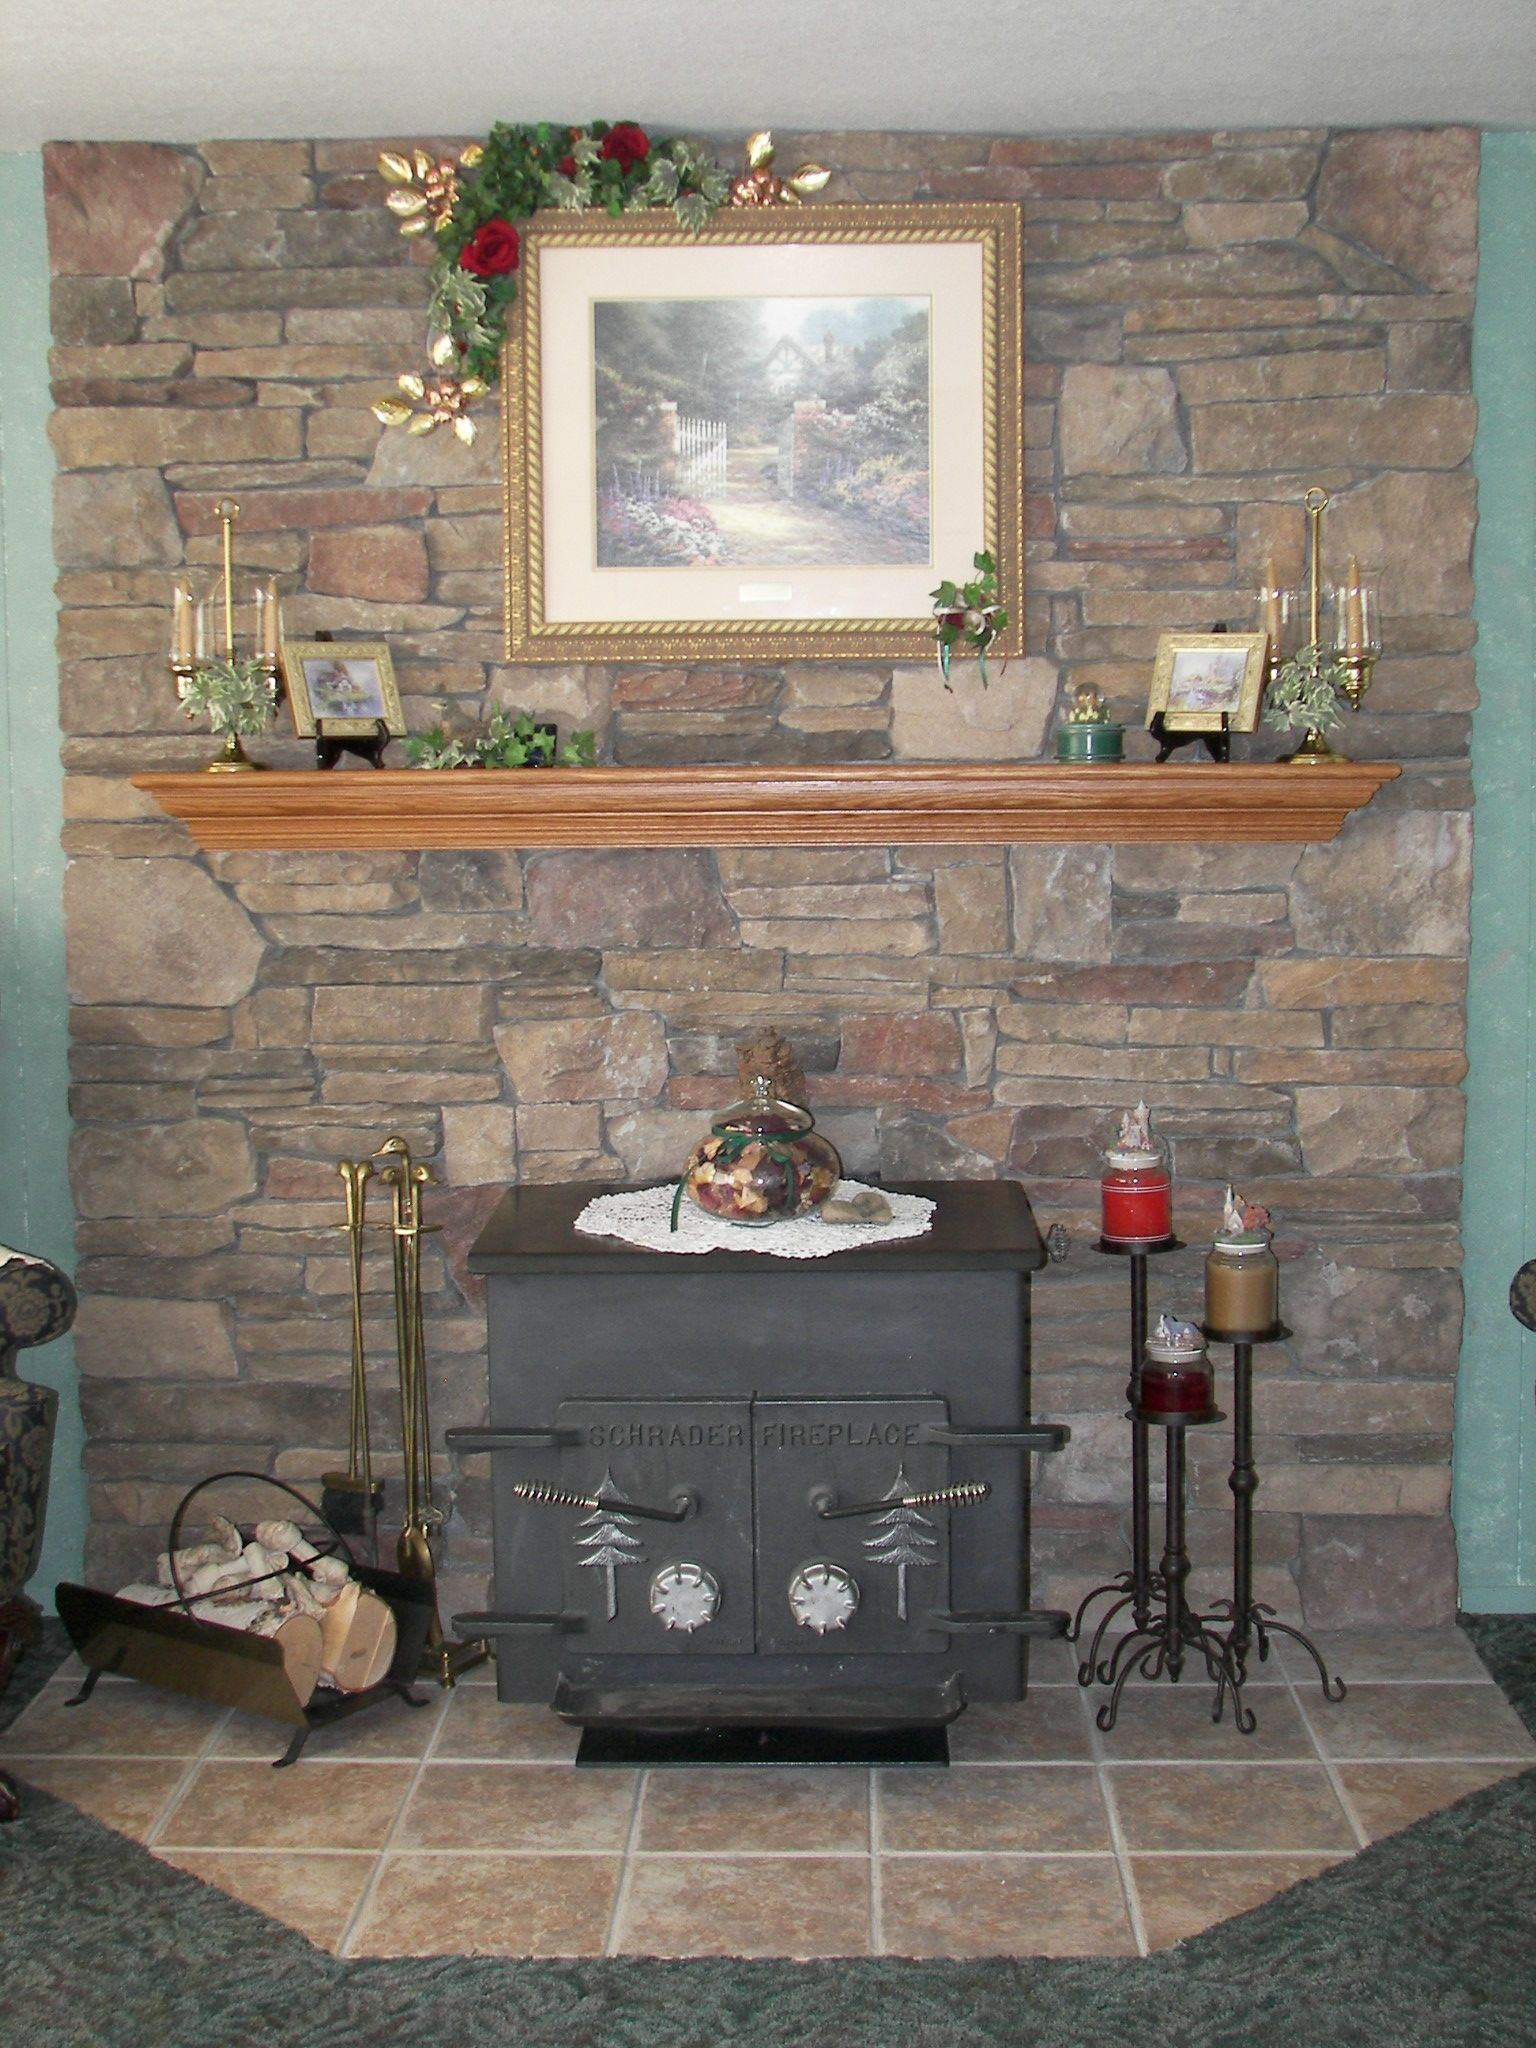 Best ideas about DIY Stone Wall Behind Wood Stove . Save or Pin pretty wood stove hearth and wall Now.